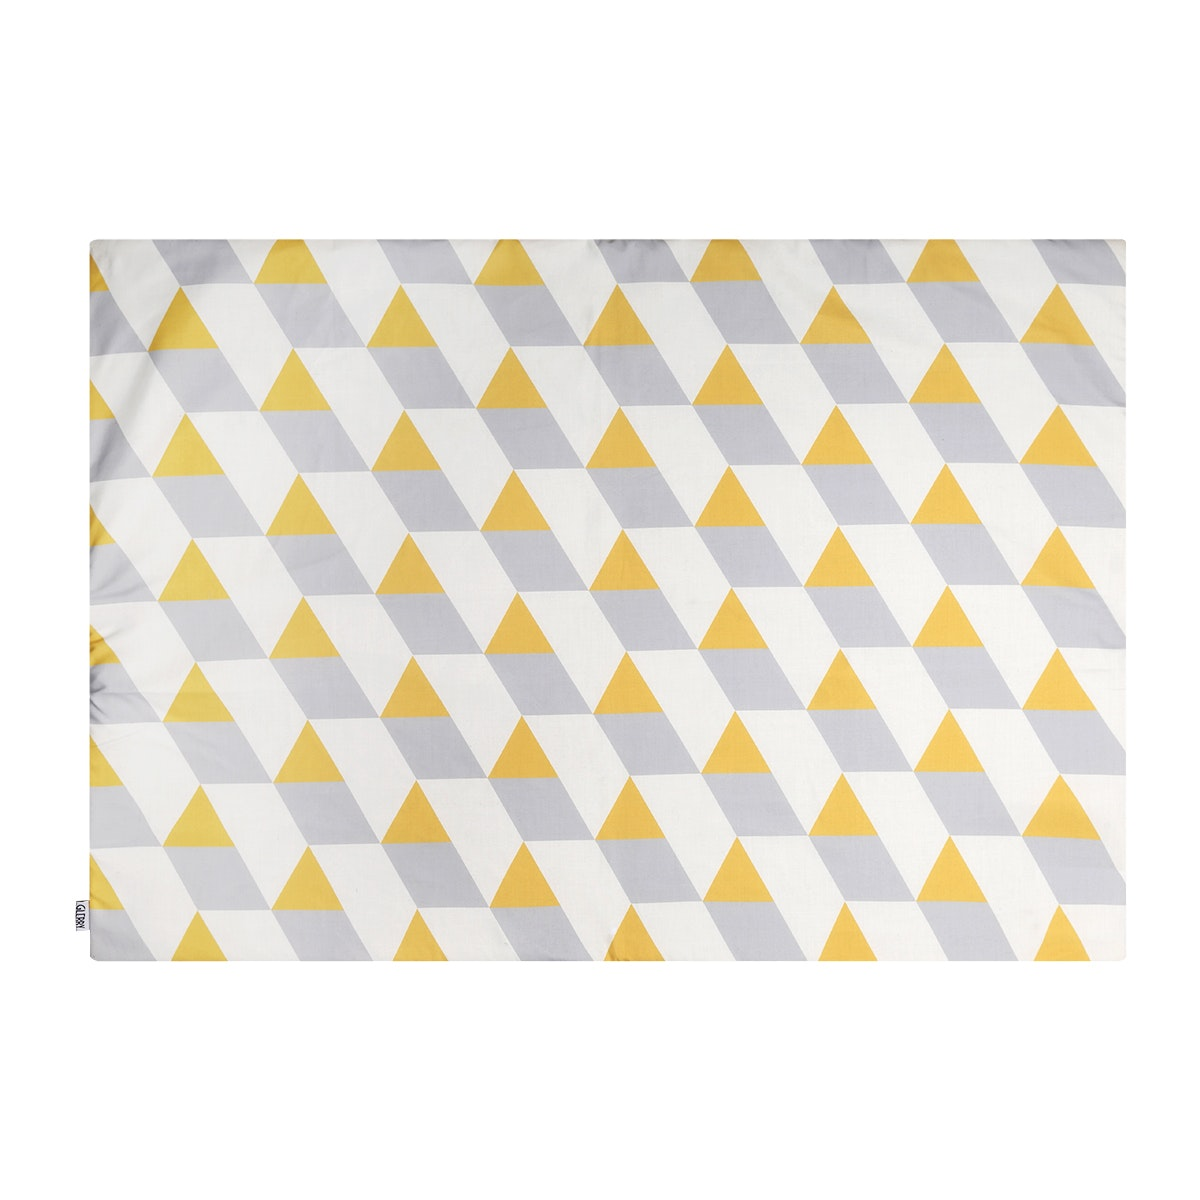 Glerry Home Decor Lemon Kiss Rug 200x140cm